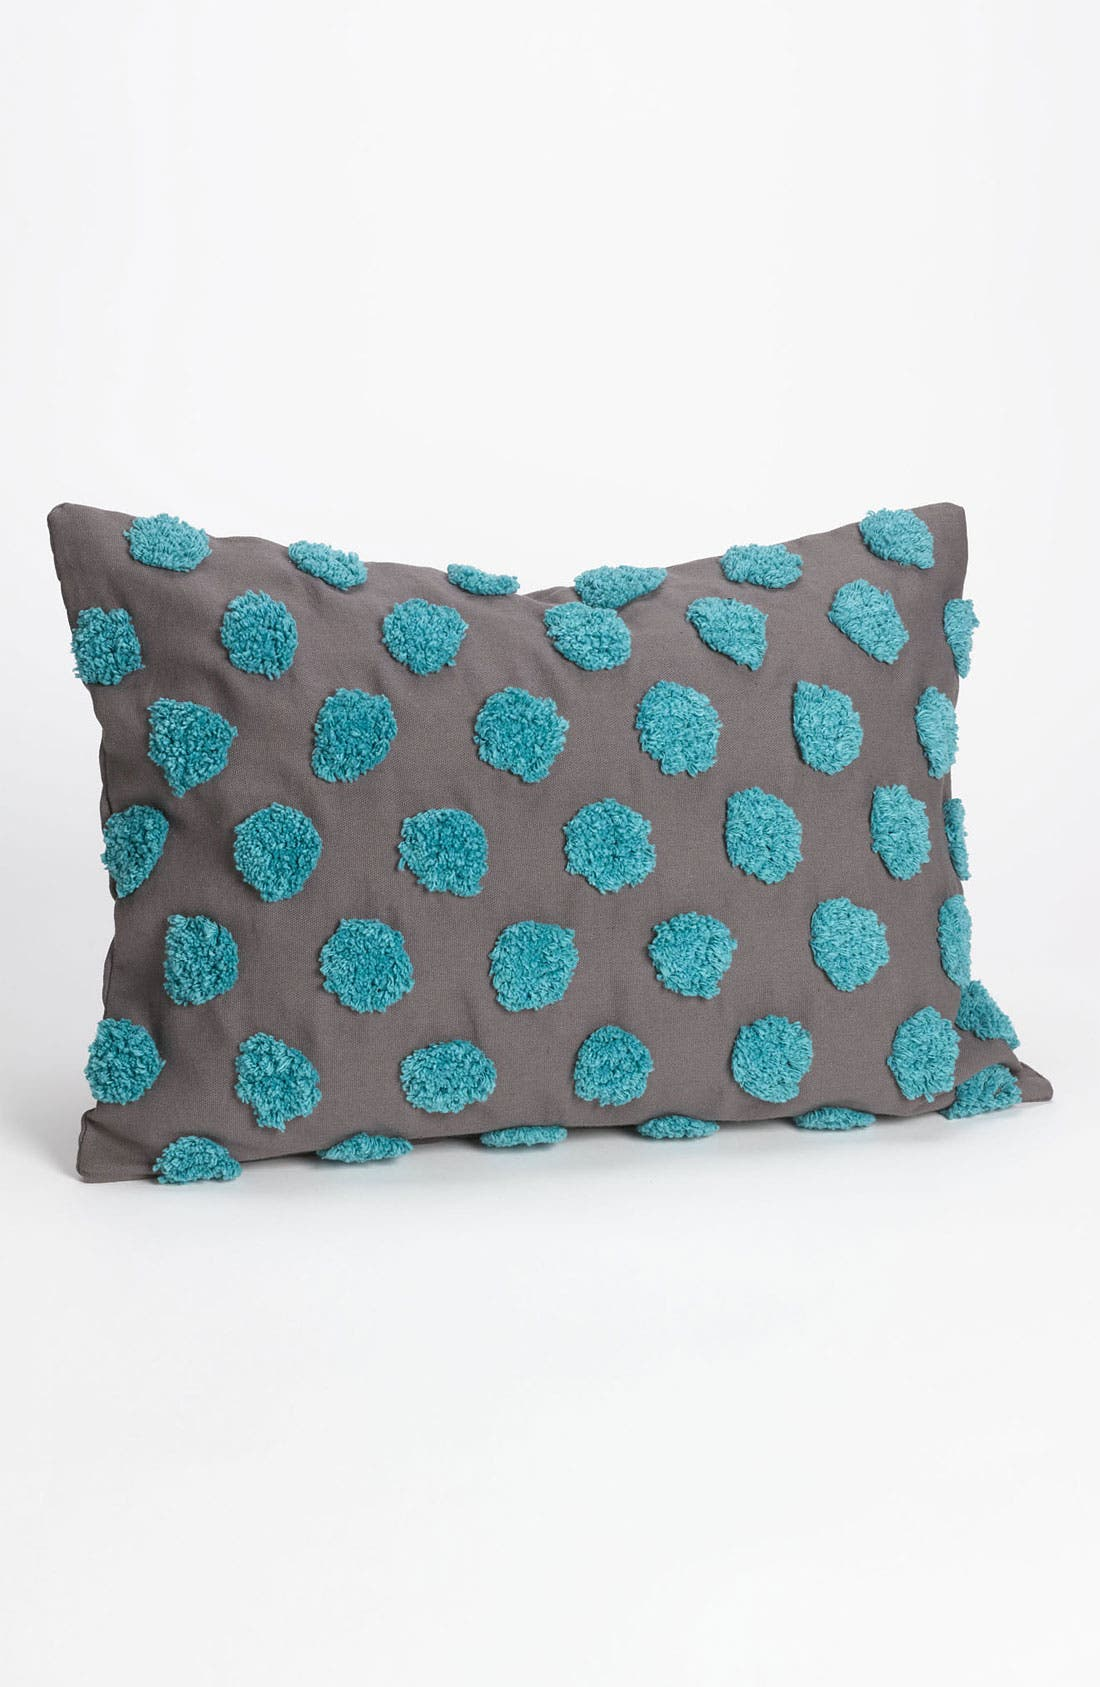 'Tufted Spots' Pillow Cover,                             Main thumbnail 1, color,                             020